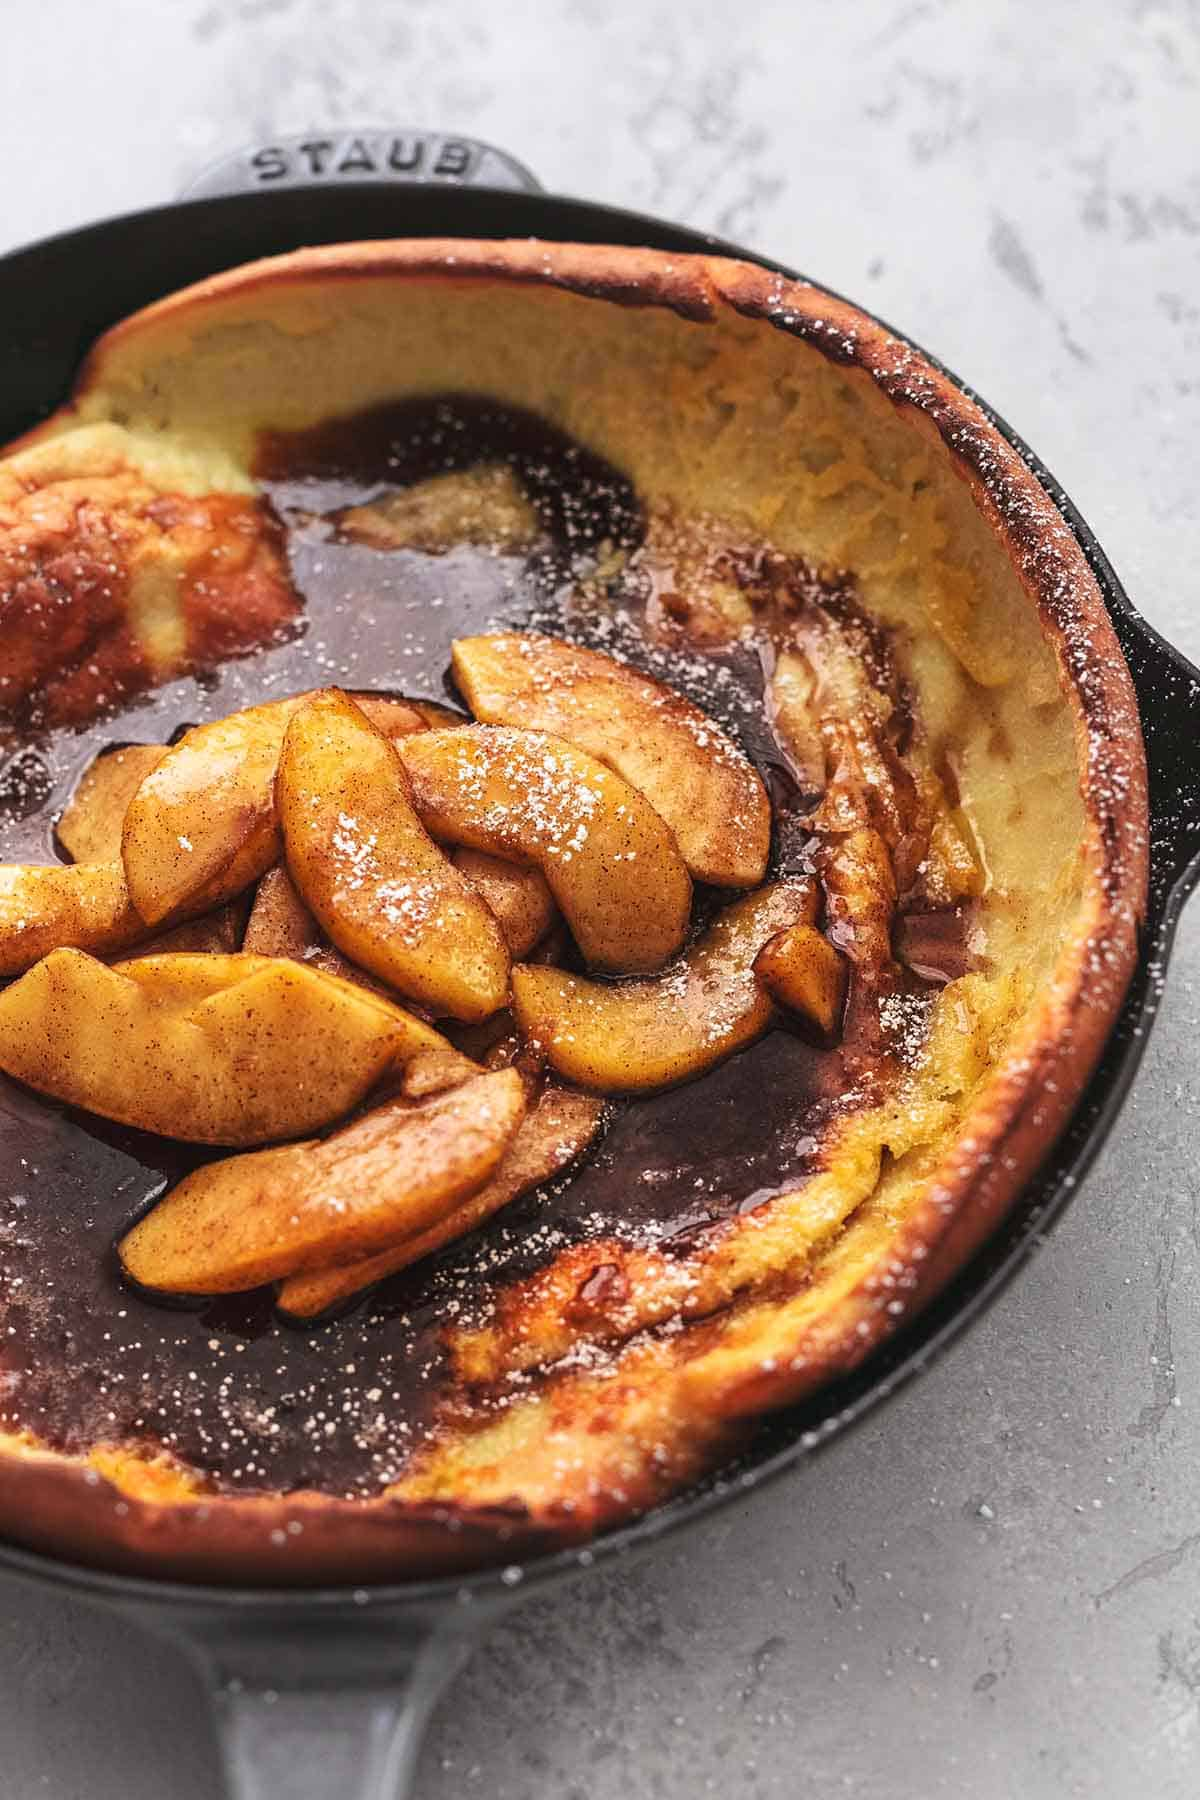 cast iron skillet with pancake and sliced apples and dark sauce